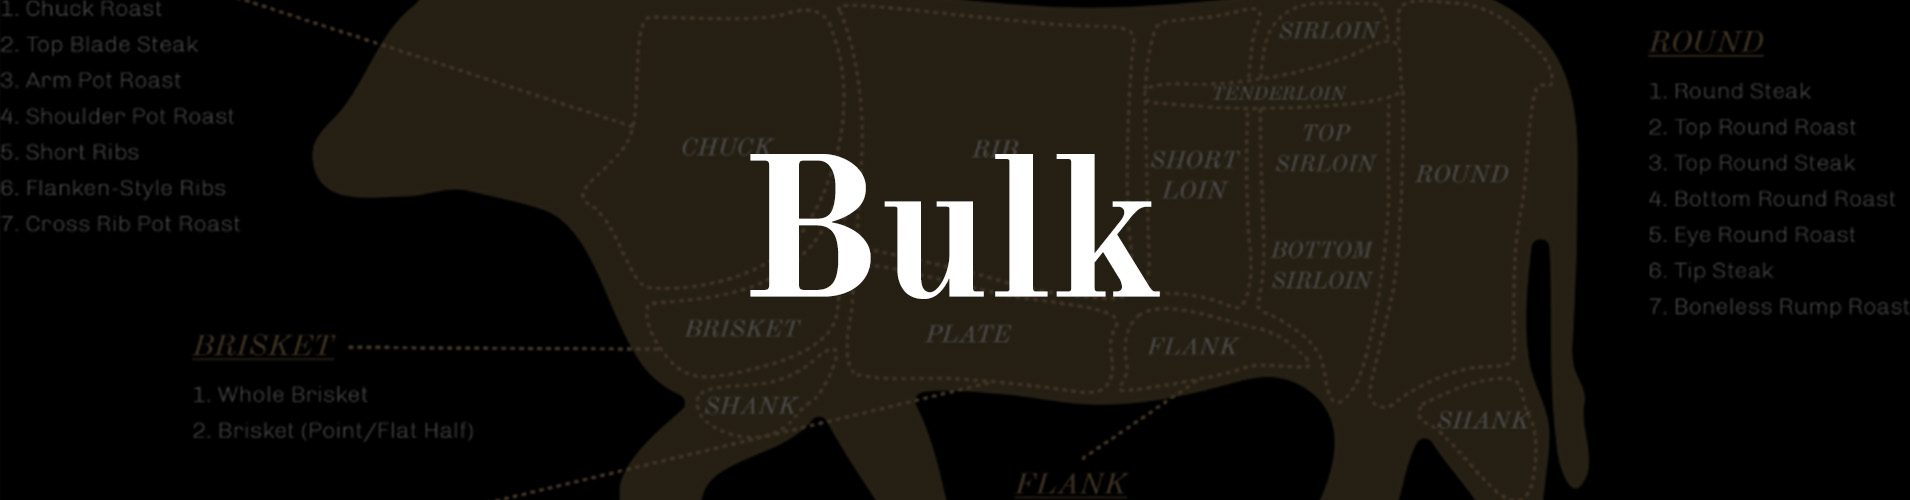 cow beef cut diagram with overlay and white text saying Bulk